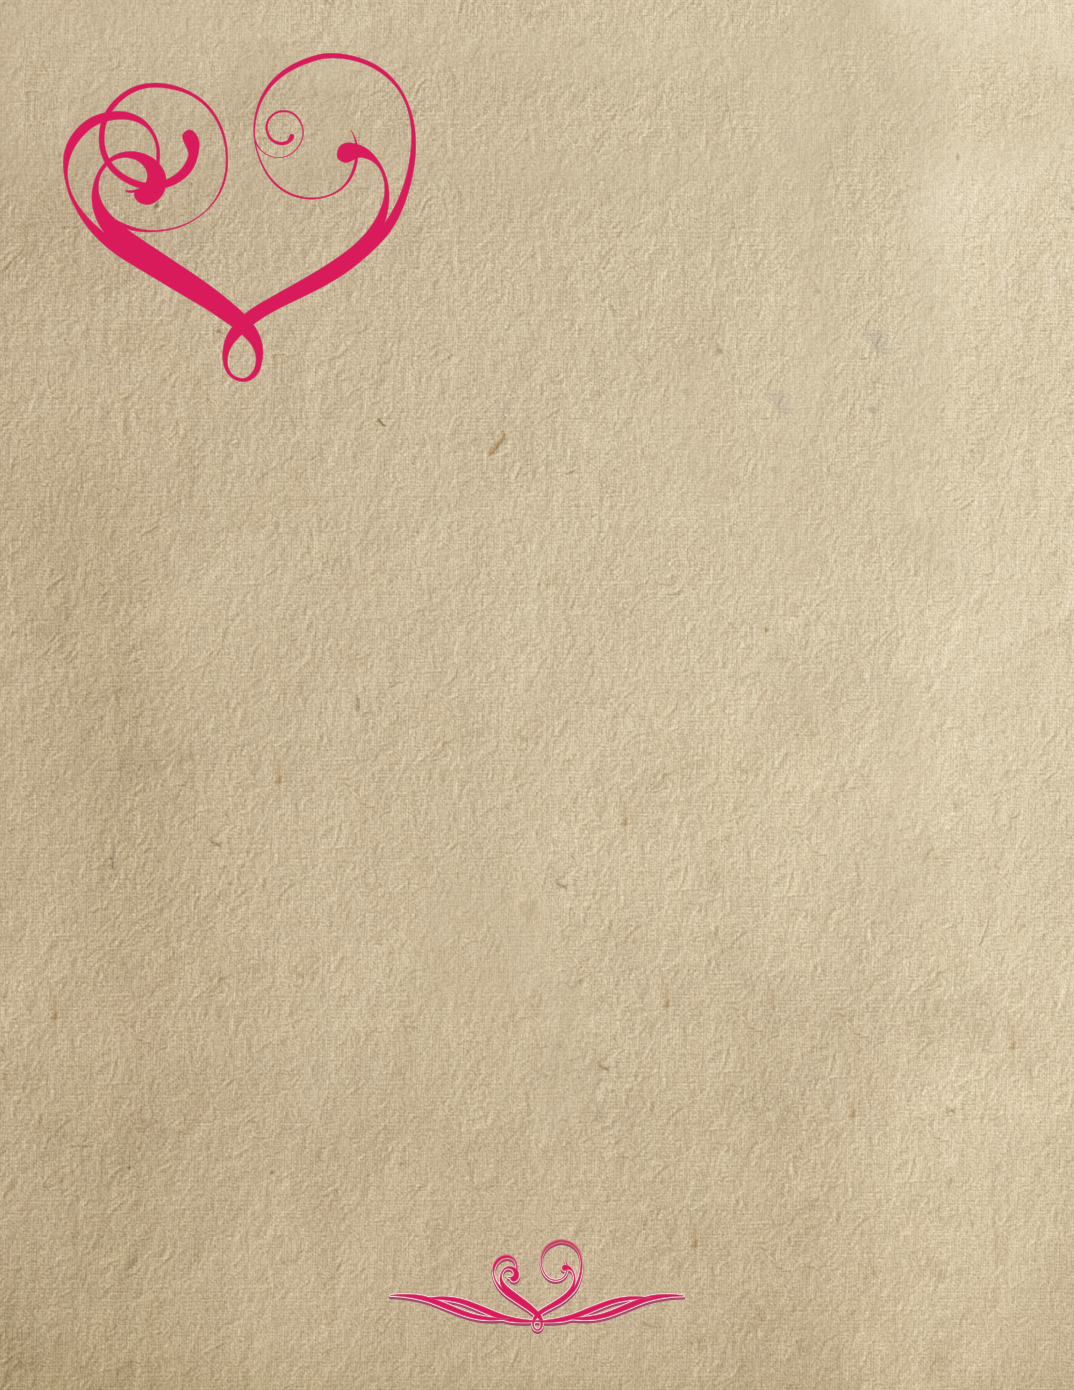 Love Letter Wallpaper Design : 8 Best Images of Printable Paper Vintage Love Letter - Free Printable Love Letter Paper ...